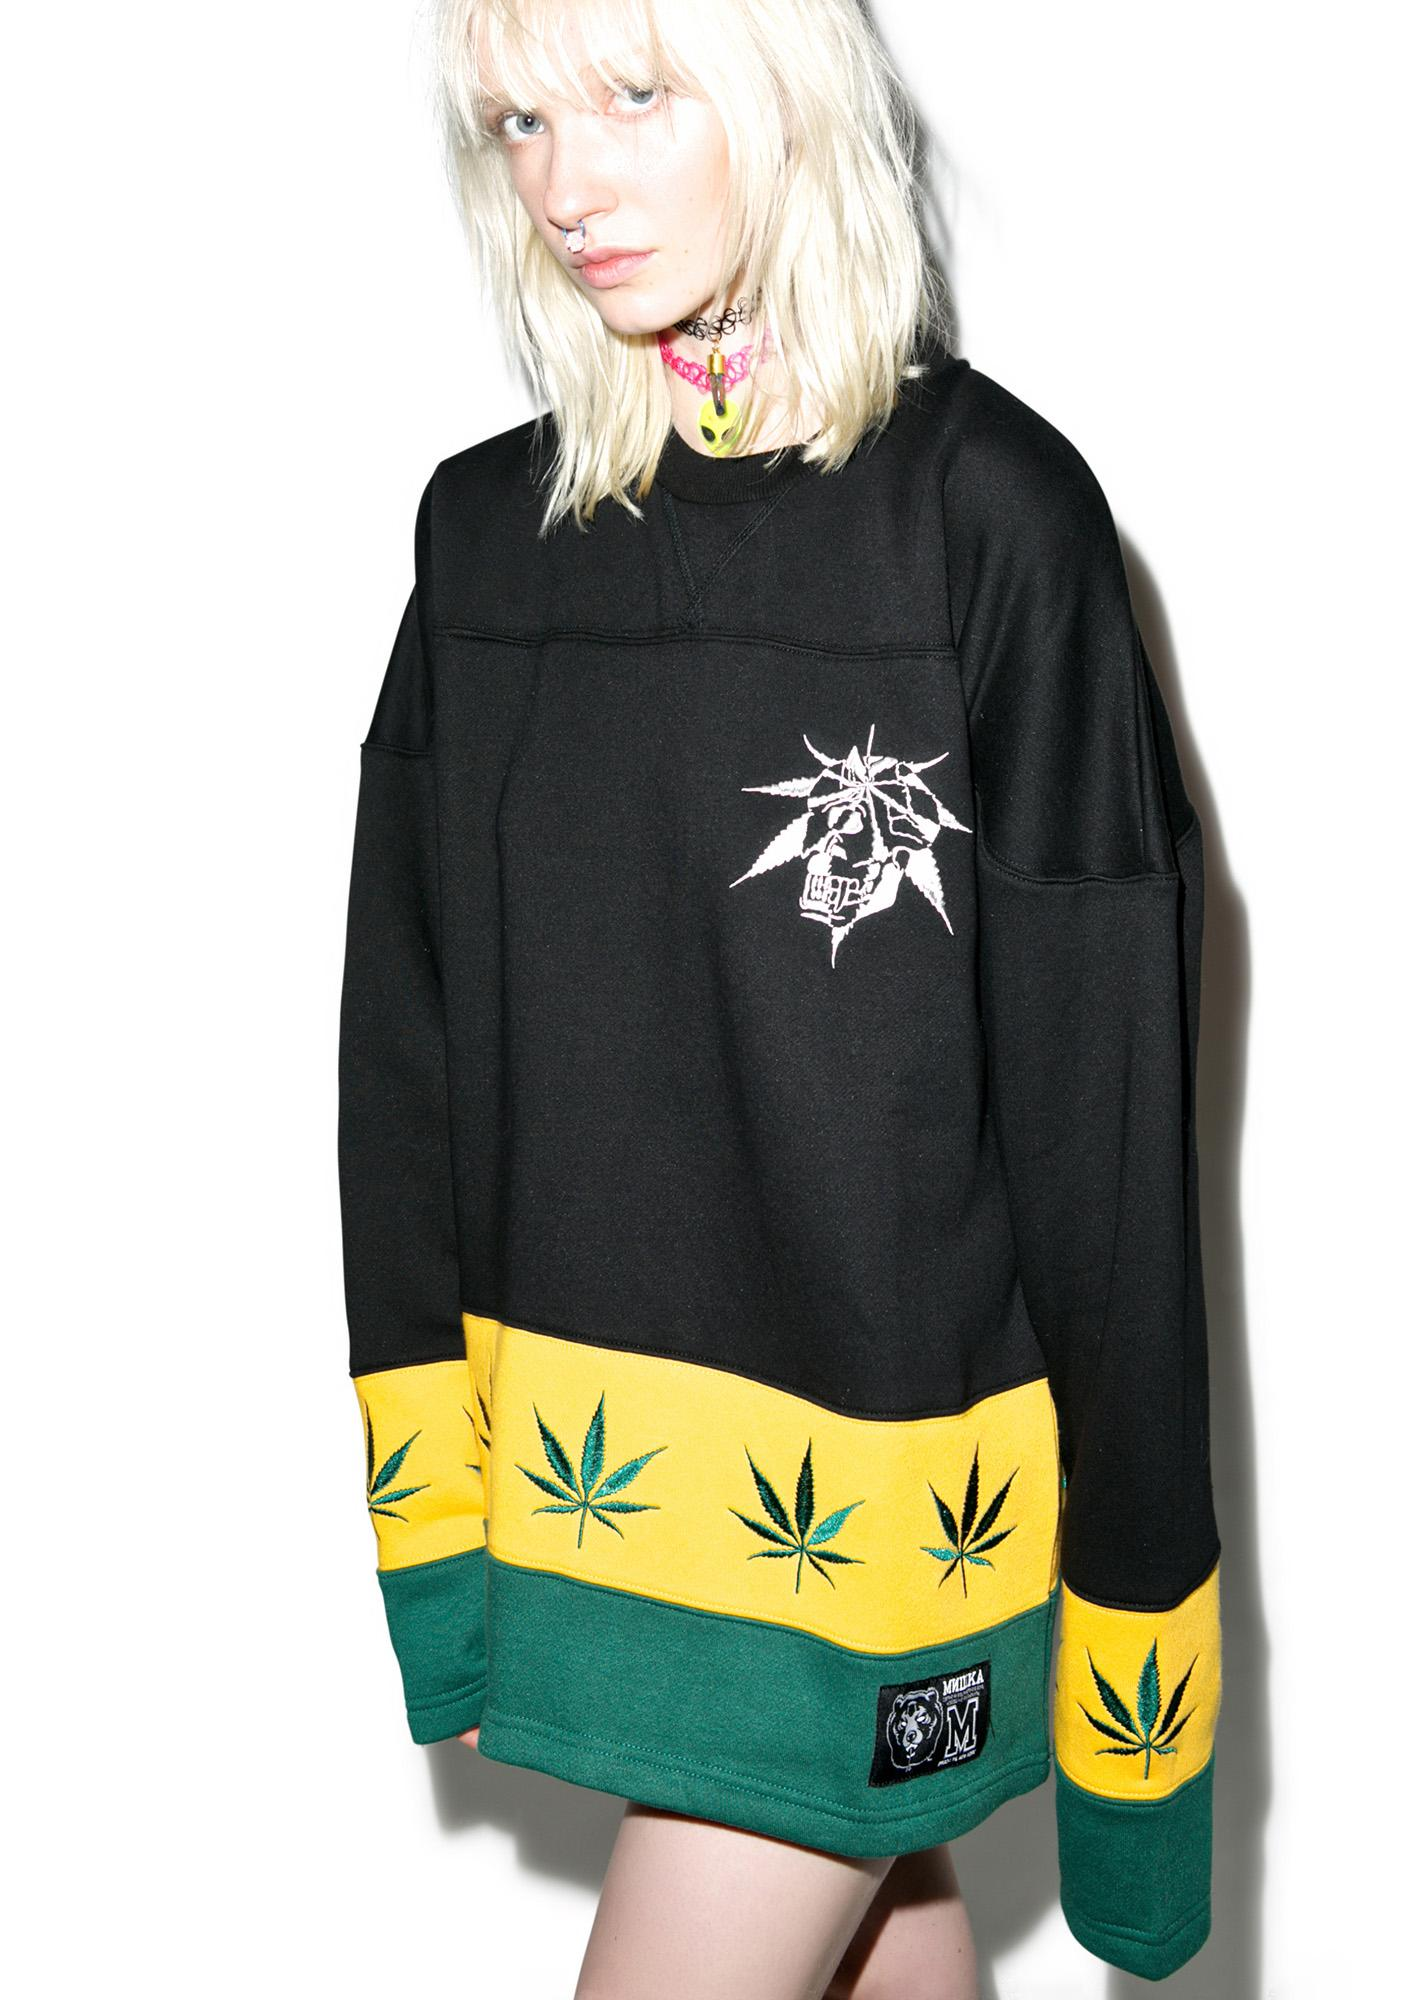 Mishka Bake Sale Crew Neck Sweater